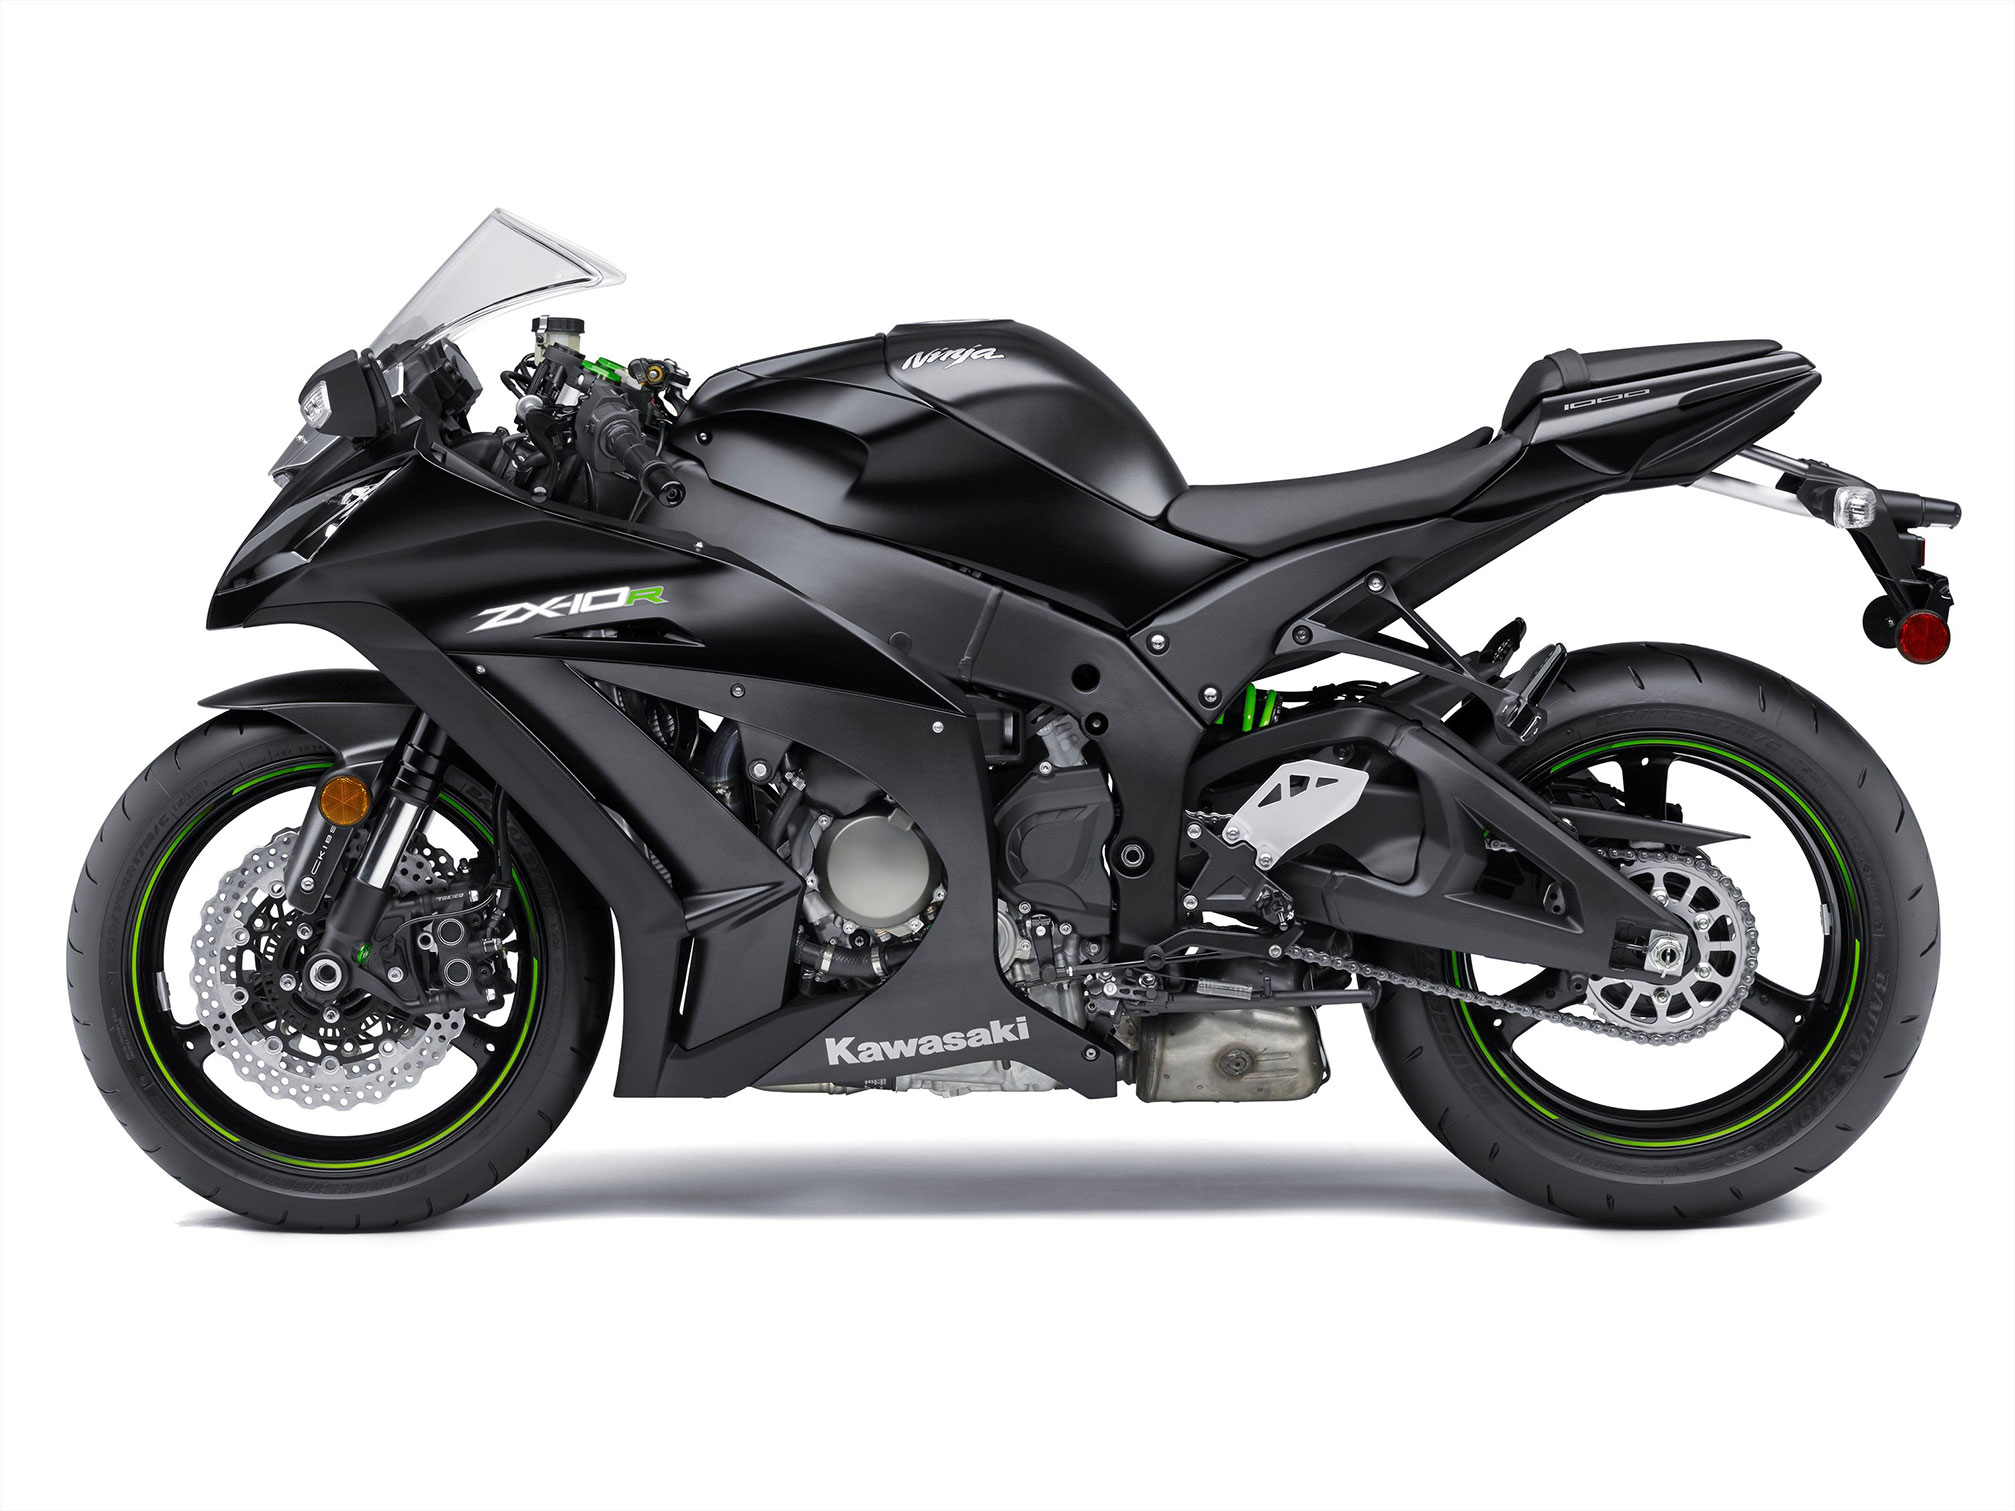 kawasaki kawasaki ninja zx 10r 2014 2015 autoevolution. Black Bedroom Furniture Sets. Home Design Ideas